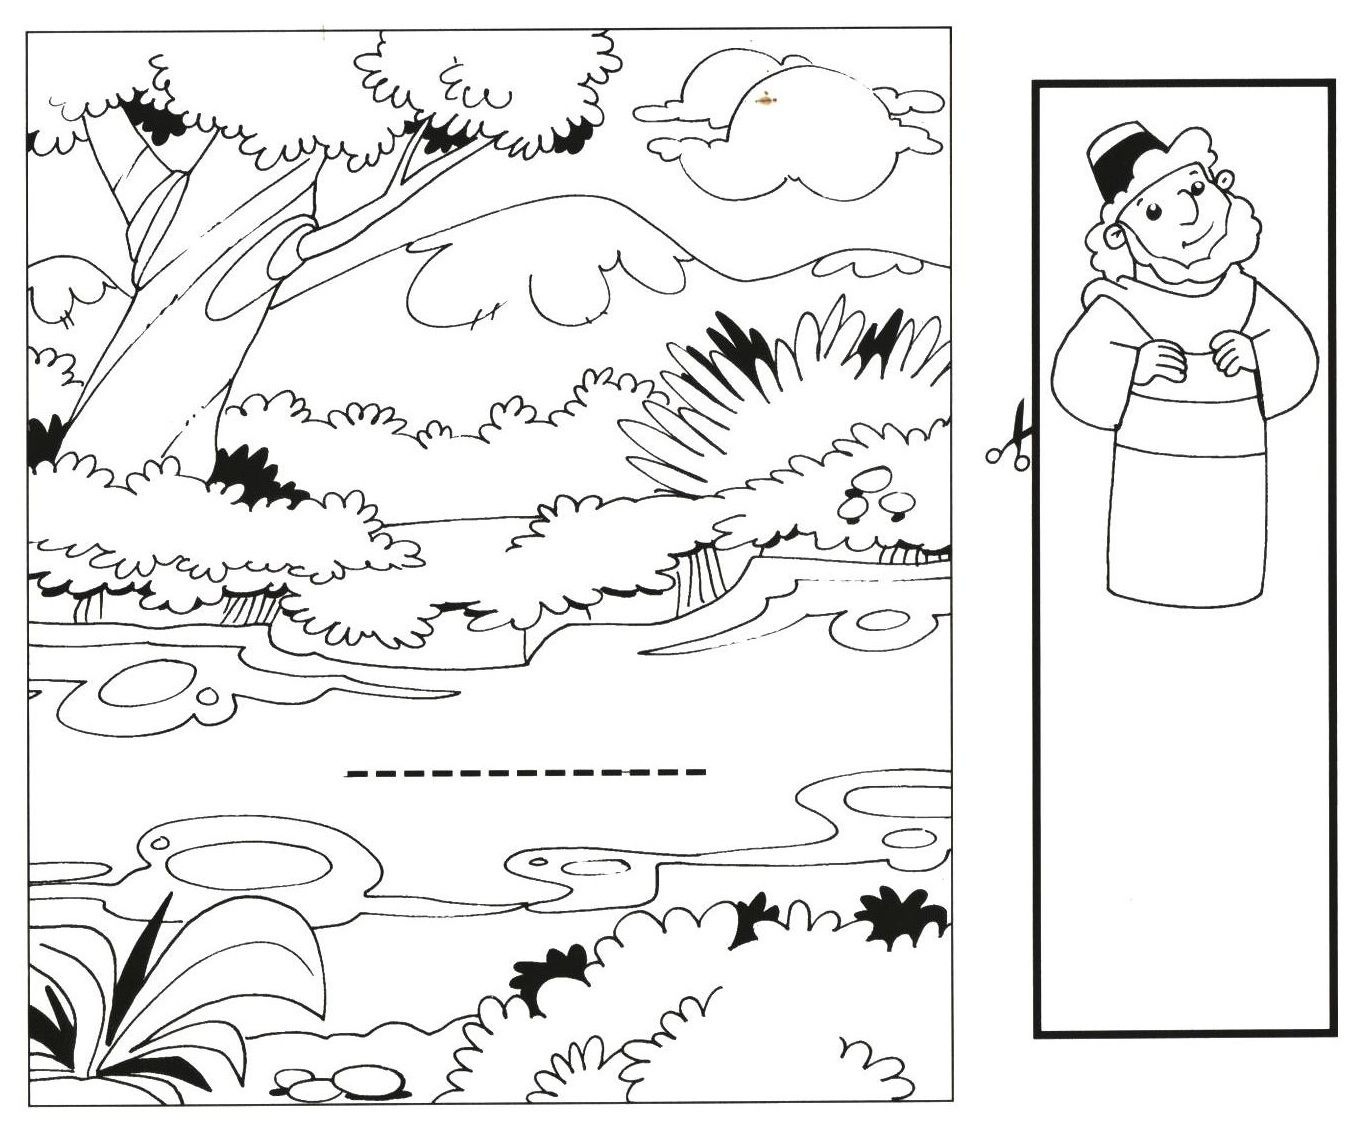 Free Coloring Pages Download Naaman Pictures Imagixs Sunday Of